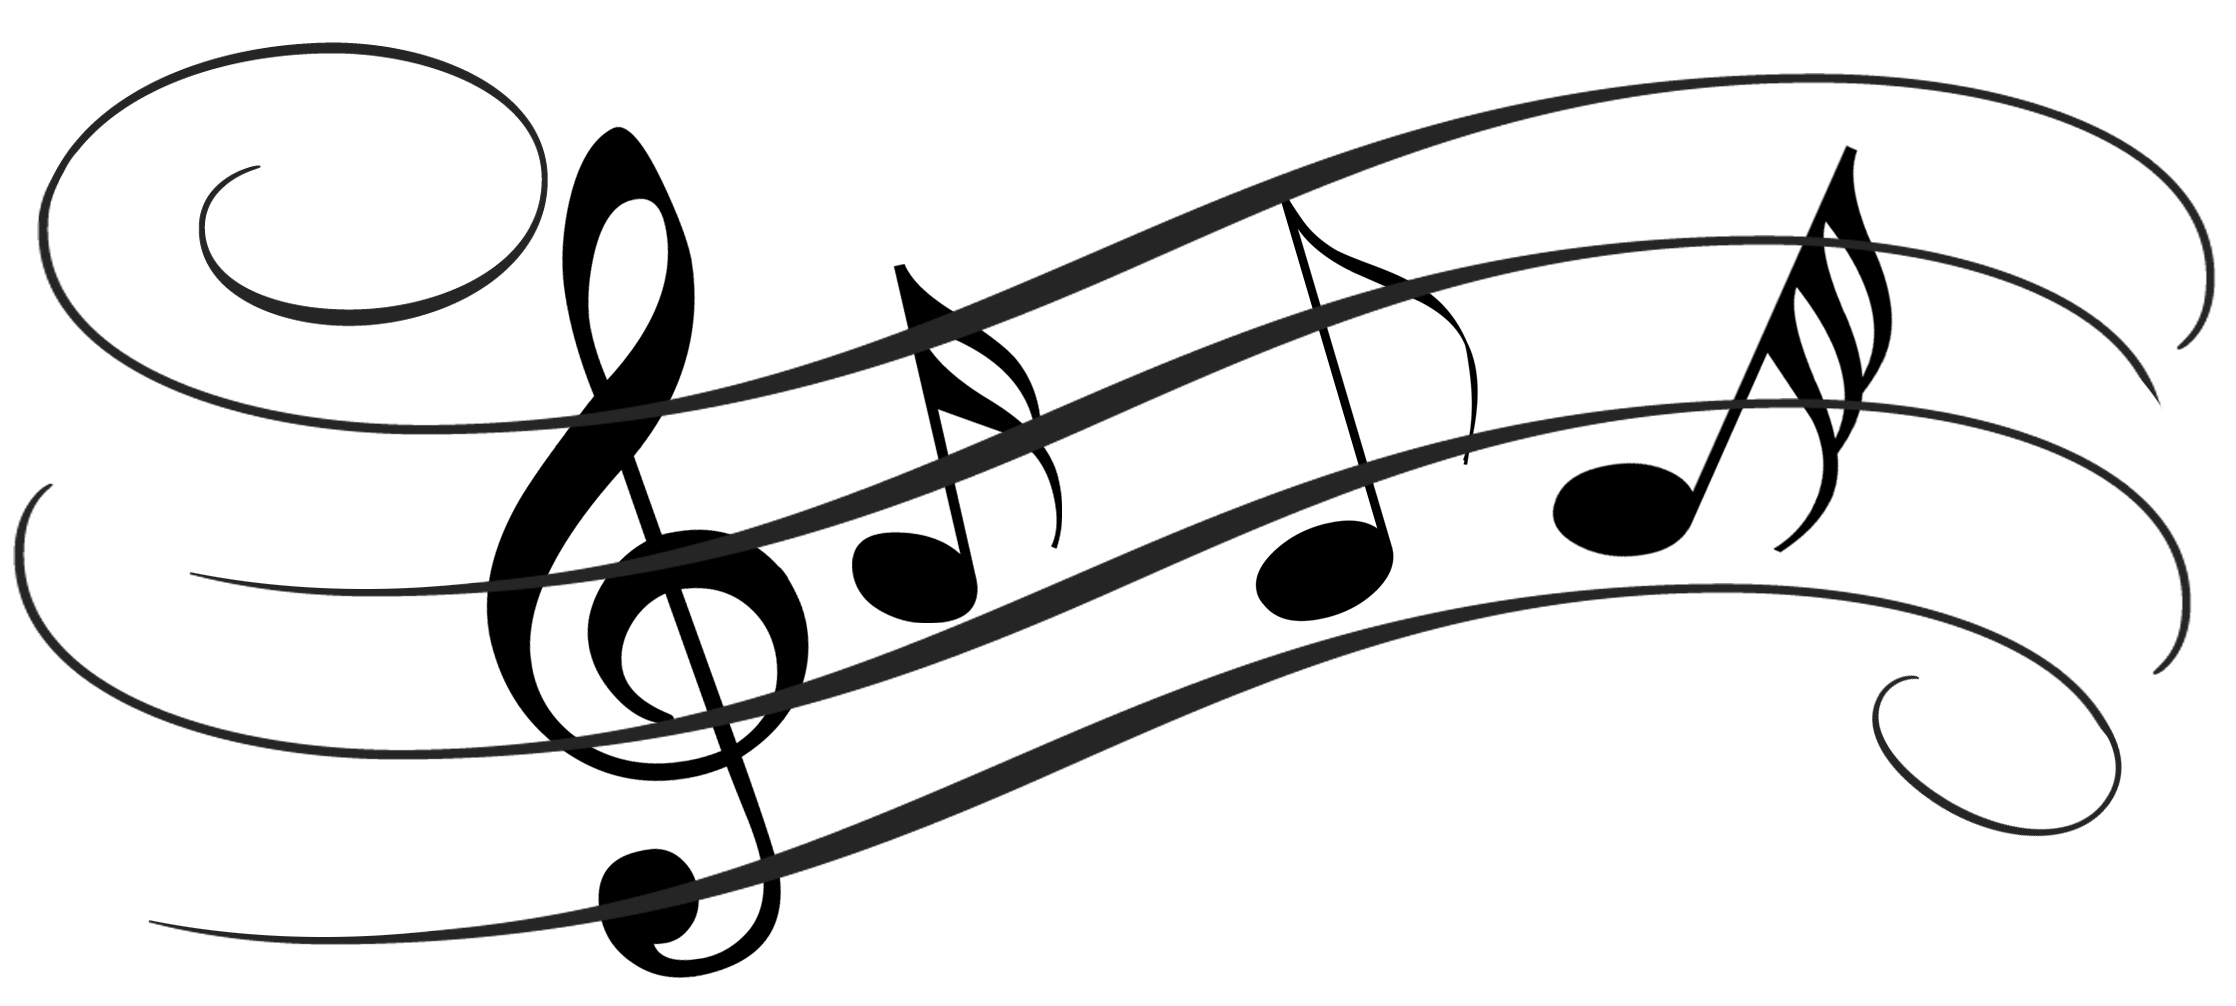 Music Notes Clip Art Png   Clipart Panda   Free Clipart Images